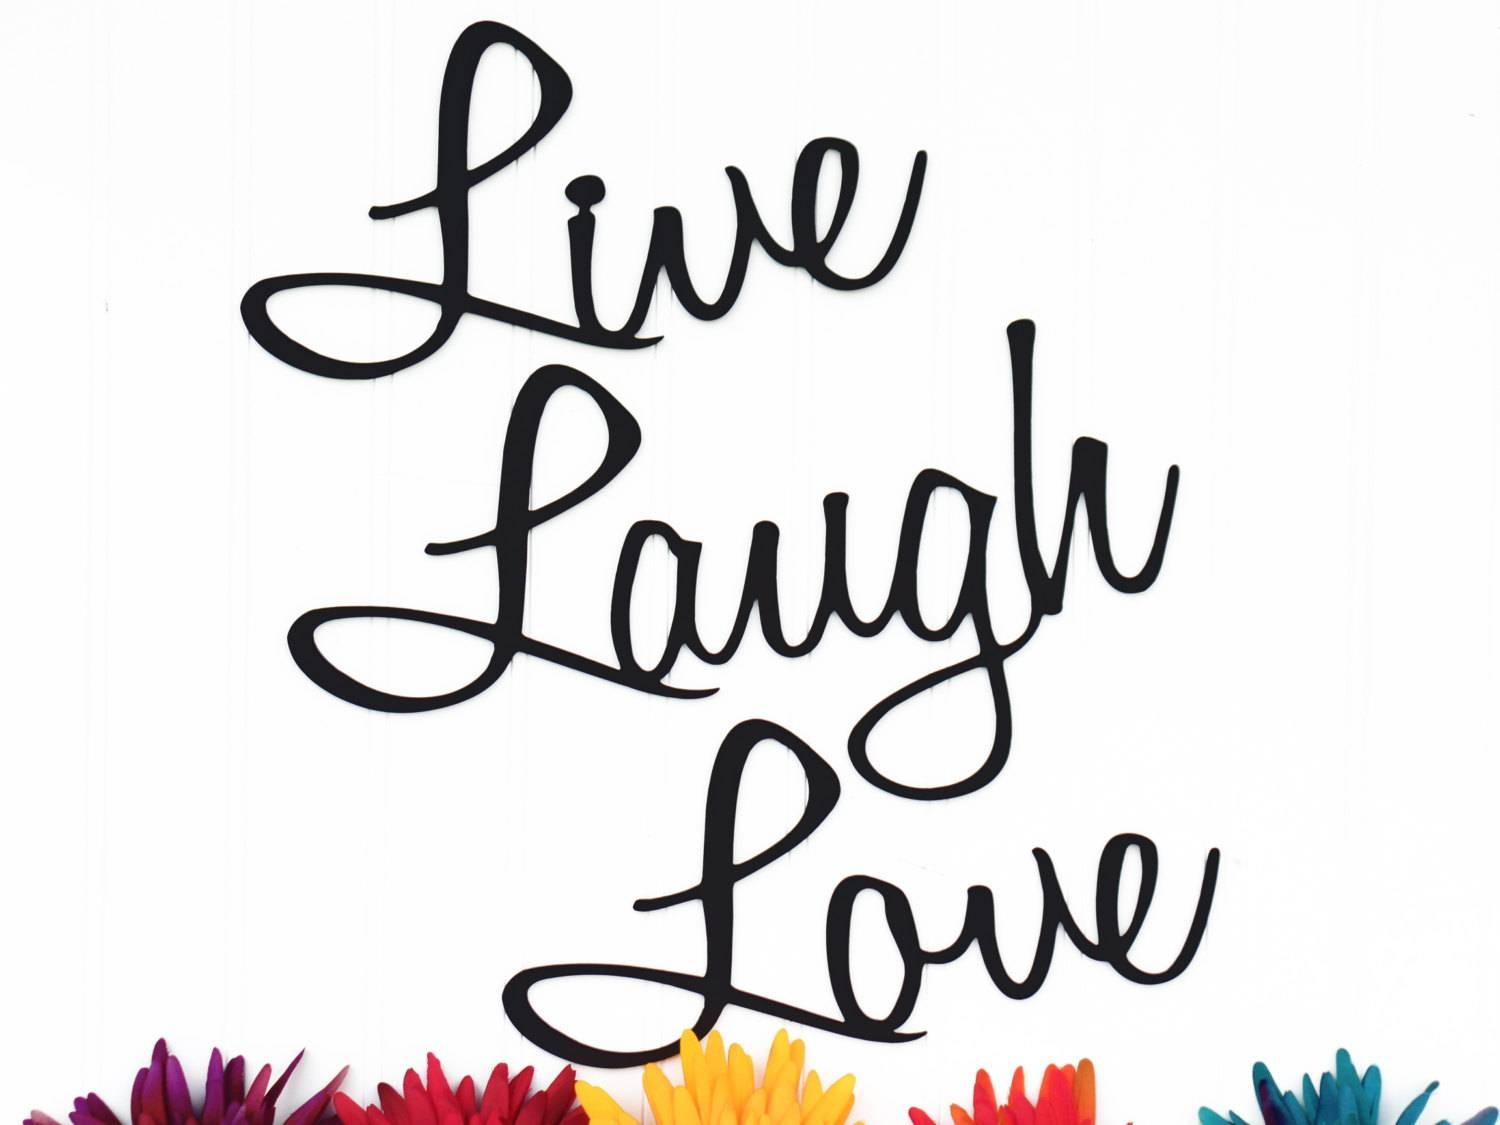 Live Laugh Love Wall Decor Patio Decor Lake House Decor With Regard To Most Recent Live Love Laugh Metal Wall Decor (View 9 of 25)